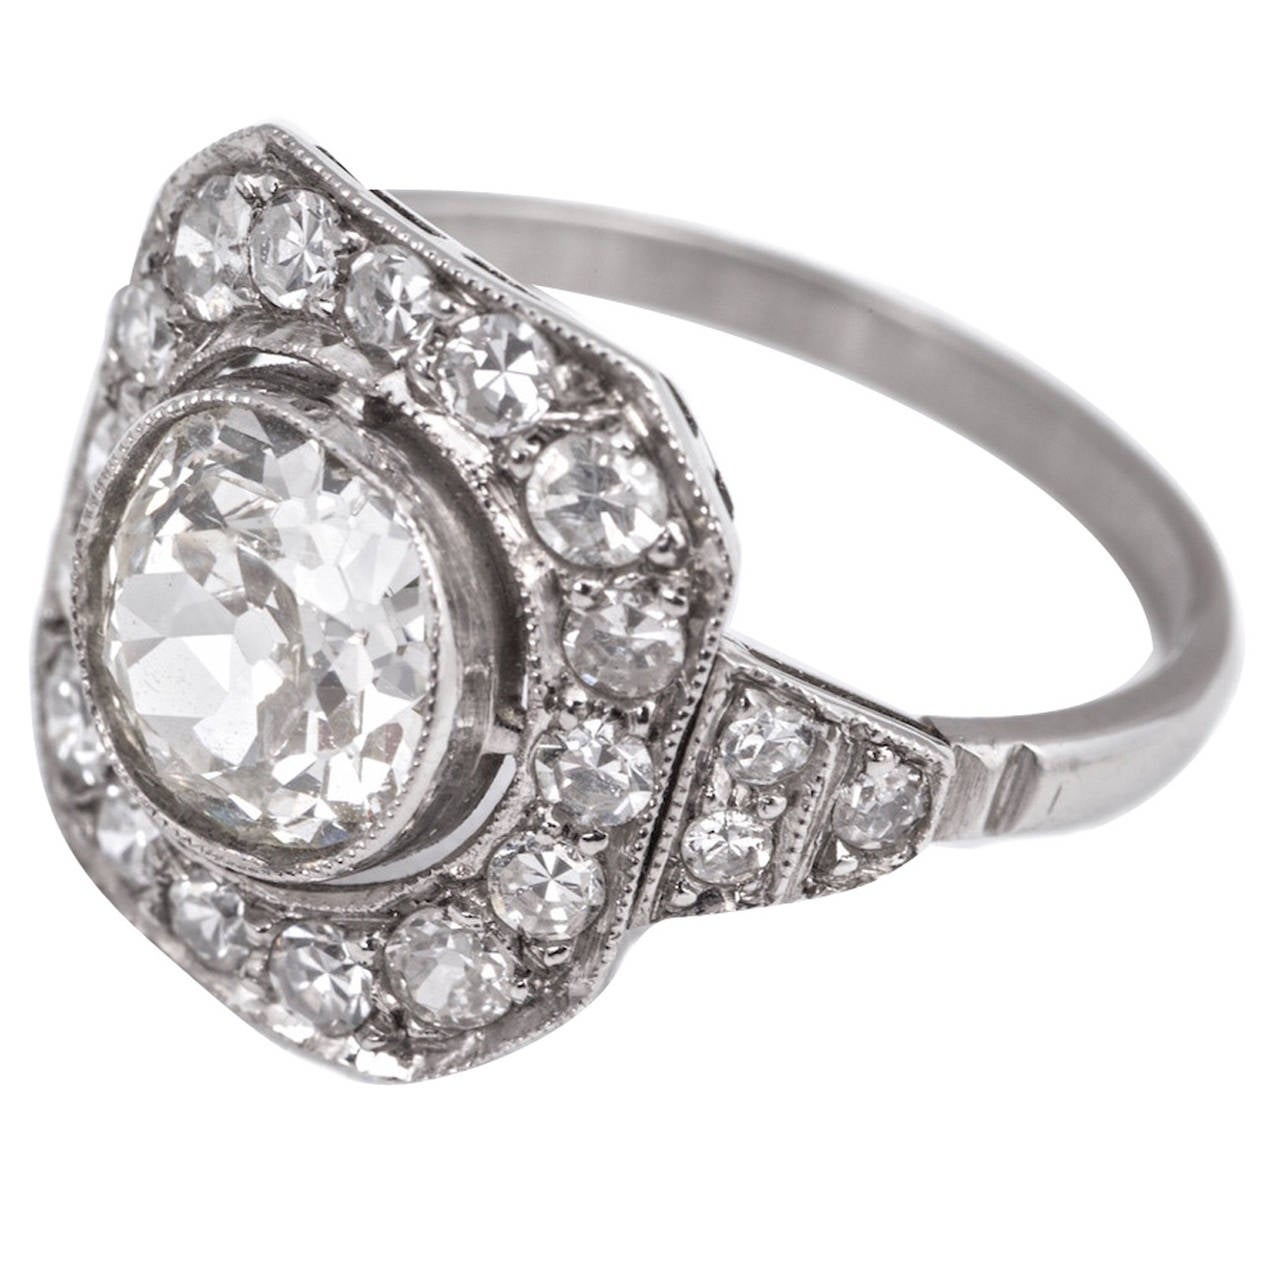 Art Deco 1.80 Carat Diamond Platinum Ring For Sale